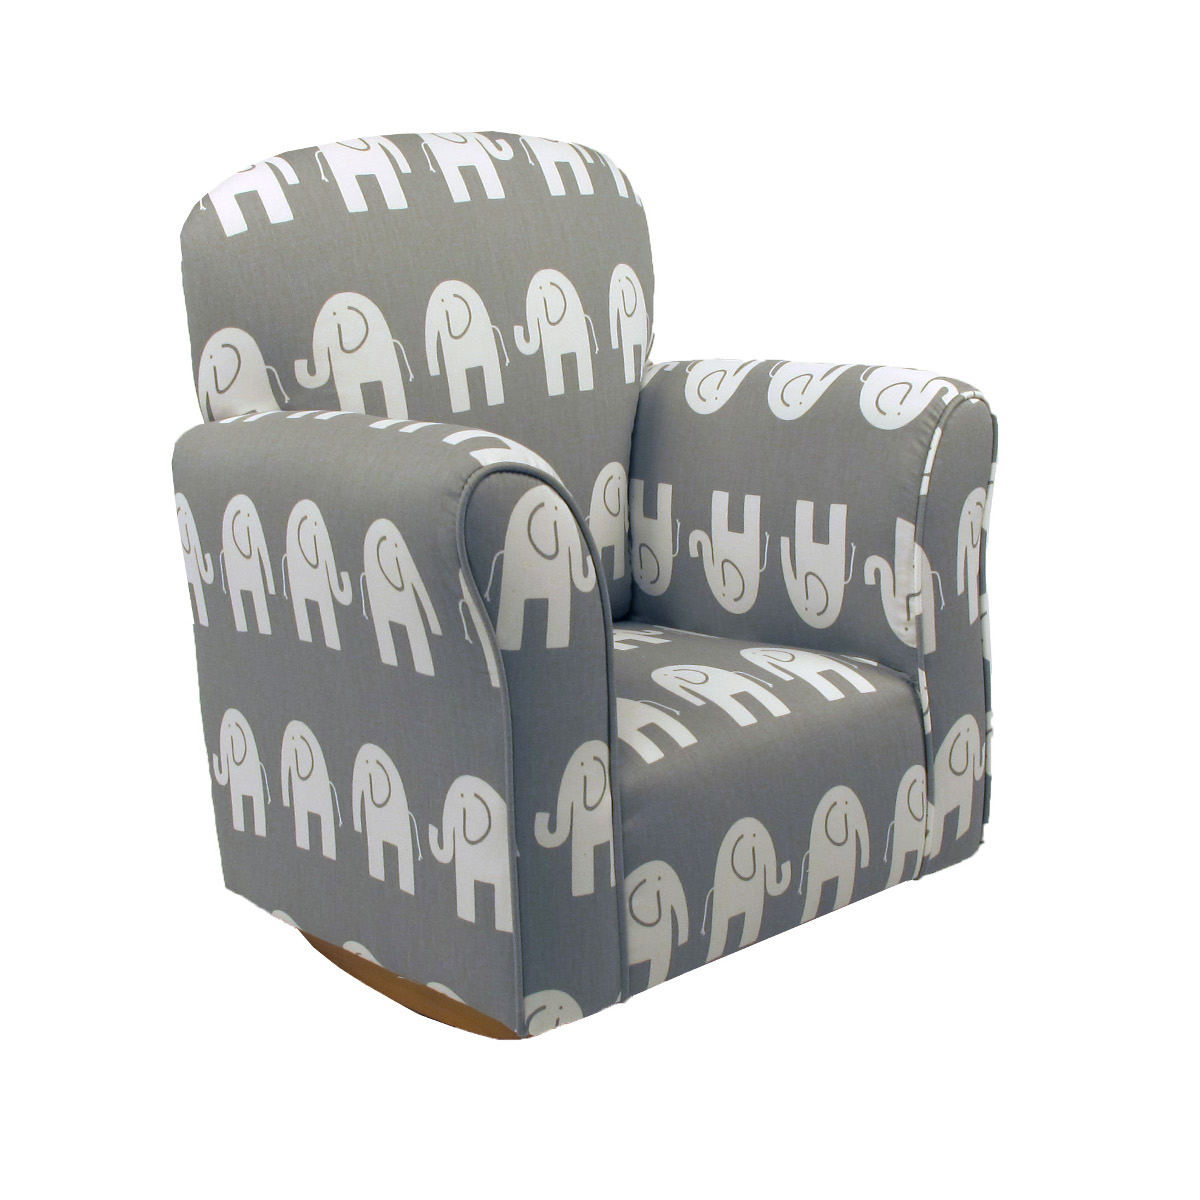 Outstanding Details About Elephant Cotton Print Toddler Rocker Cotton Rocking Chair Gmtry Best Dining Table And Chair Ideas Images Gmtryco